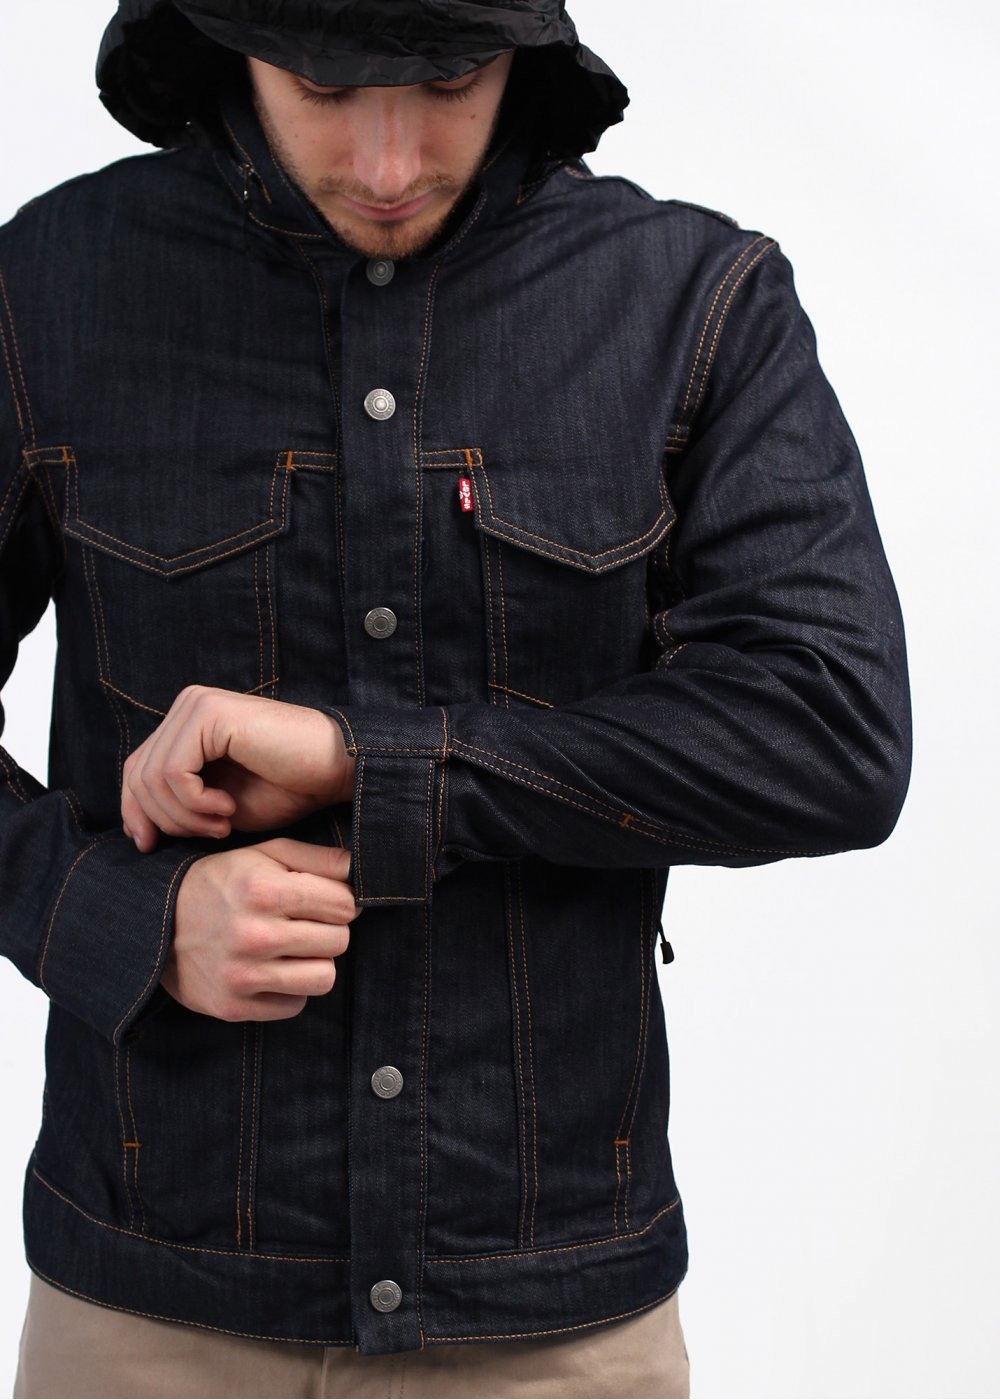 Levis Commuter Hooded Jacket | Mtb Jeans | Levis Commuter Jacket